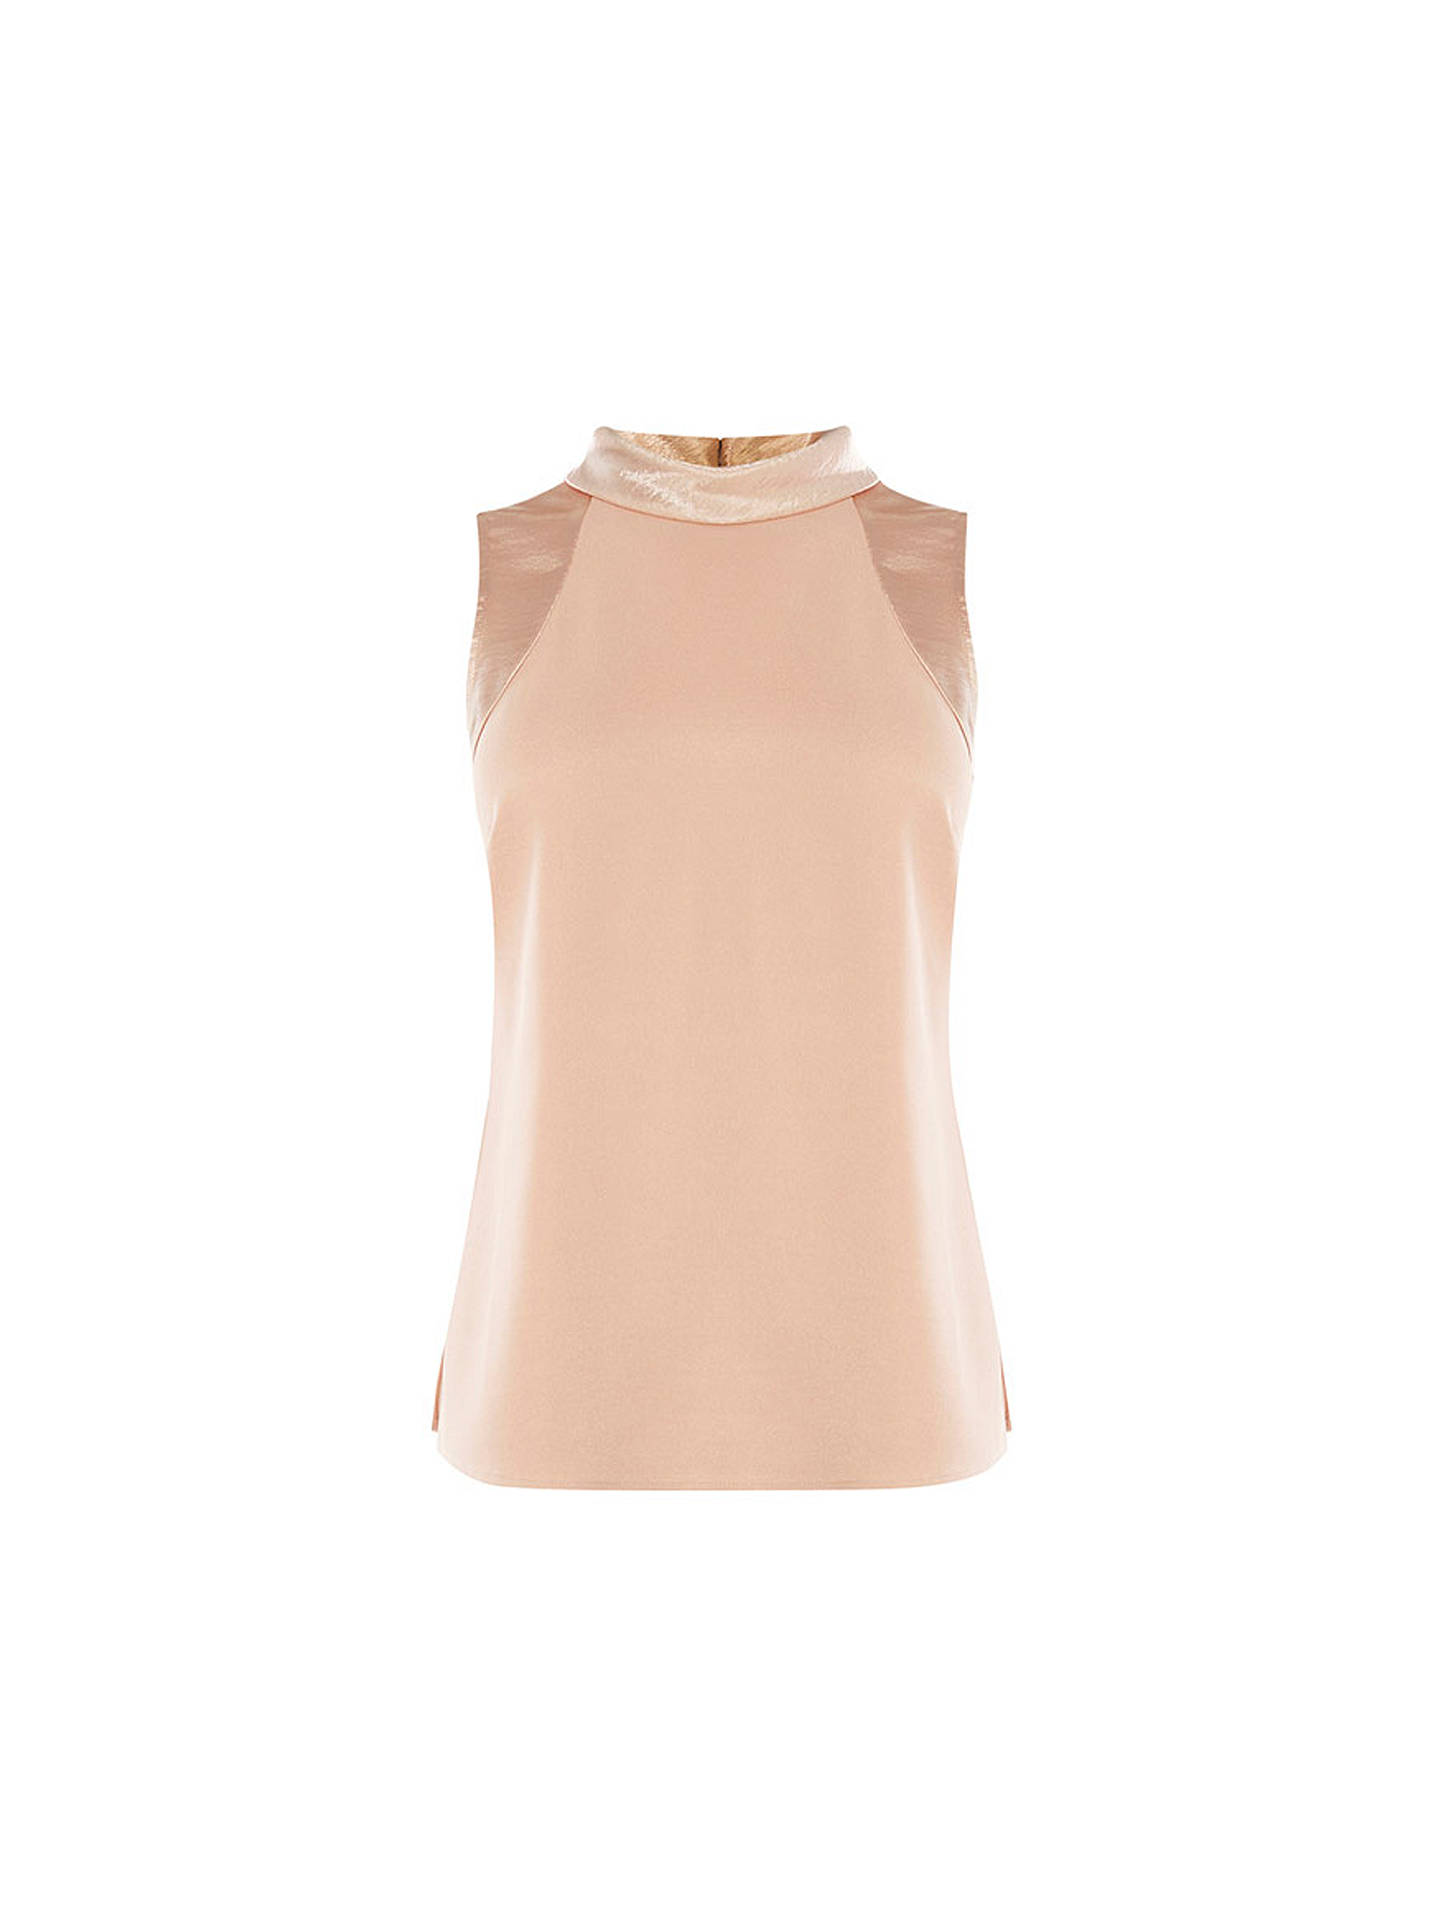 BuyCoast Fergie Roll Neck Top, Blush, 6 Online at johnlewis.com